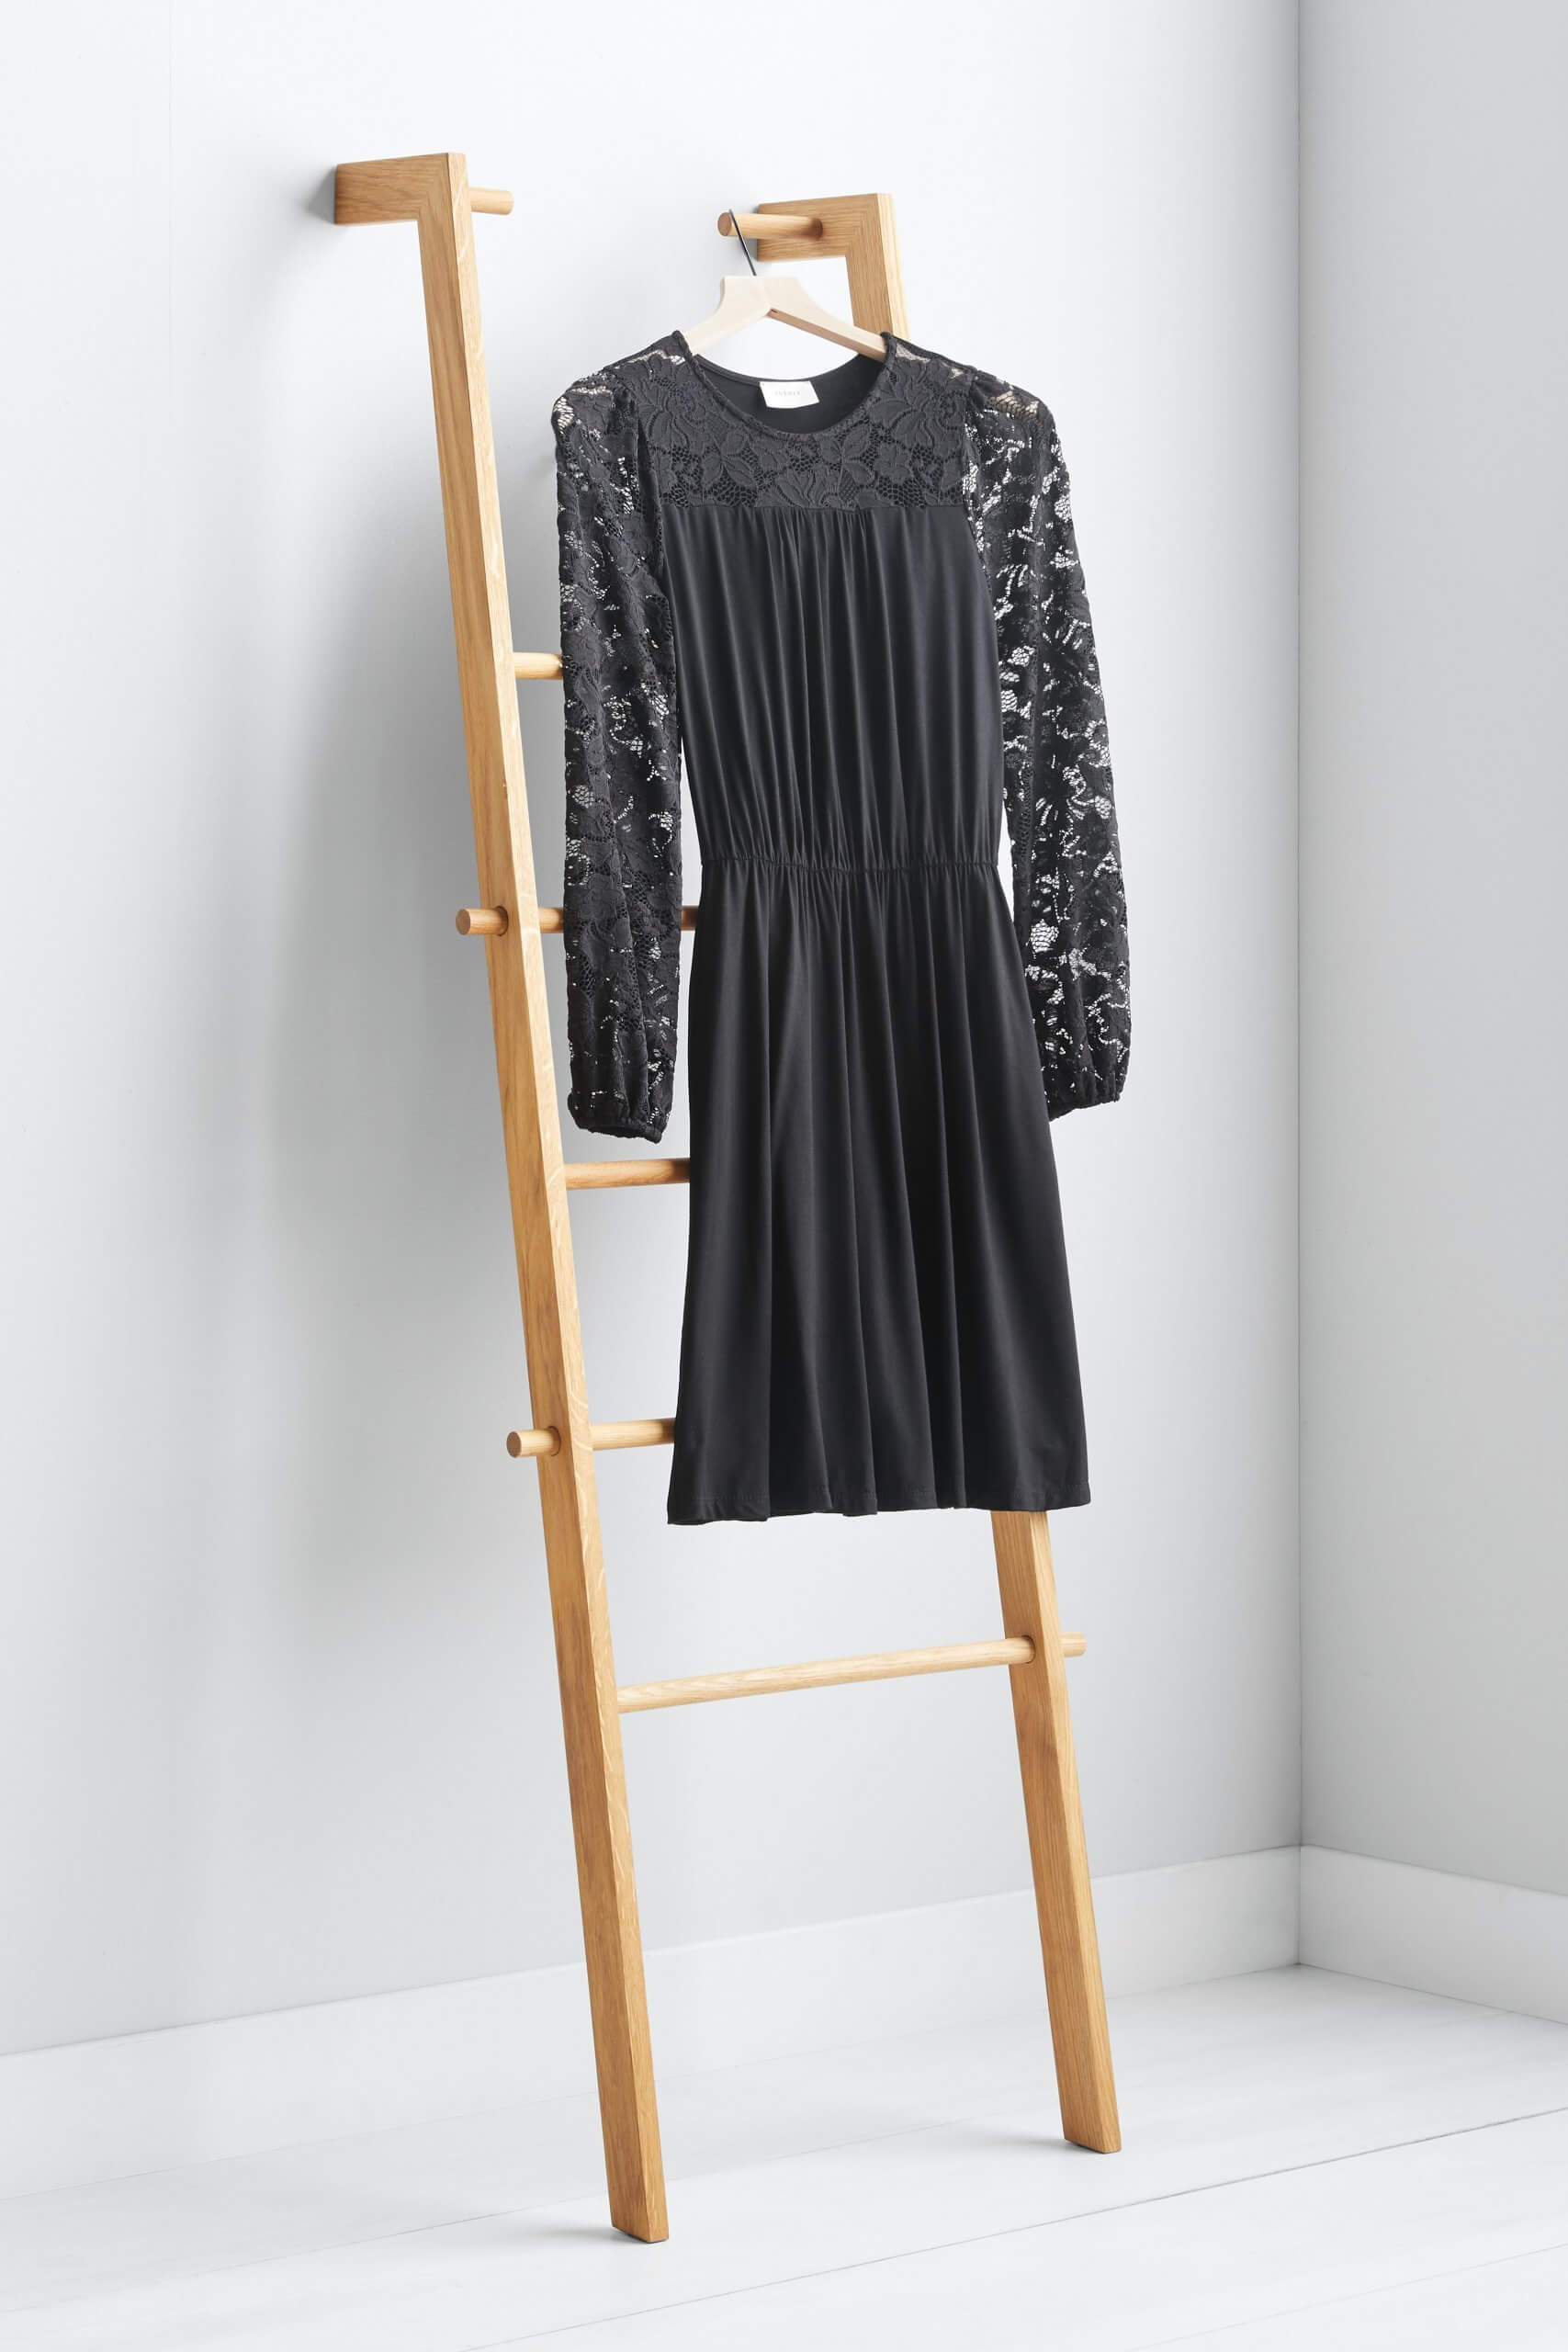 Stitch Fix Women's black dress with lace sleeves hanging on a wooden ladder.